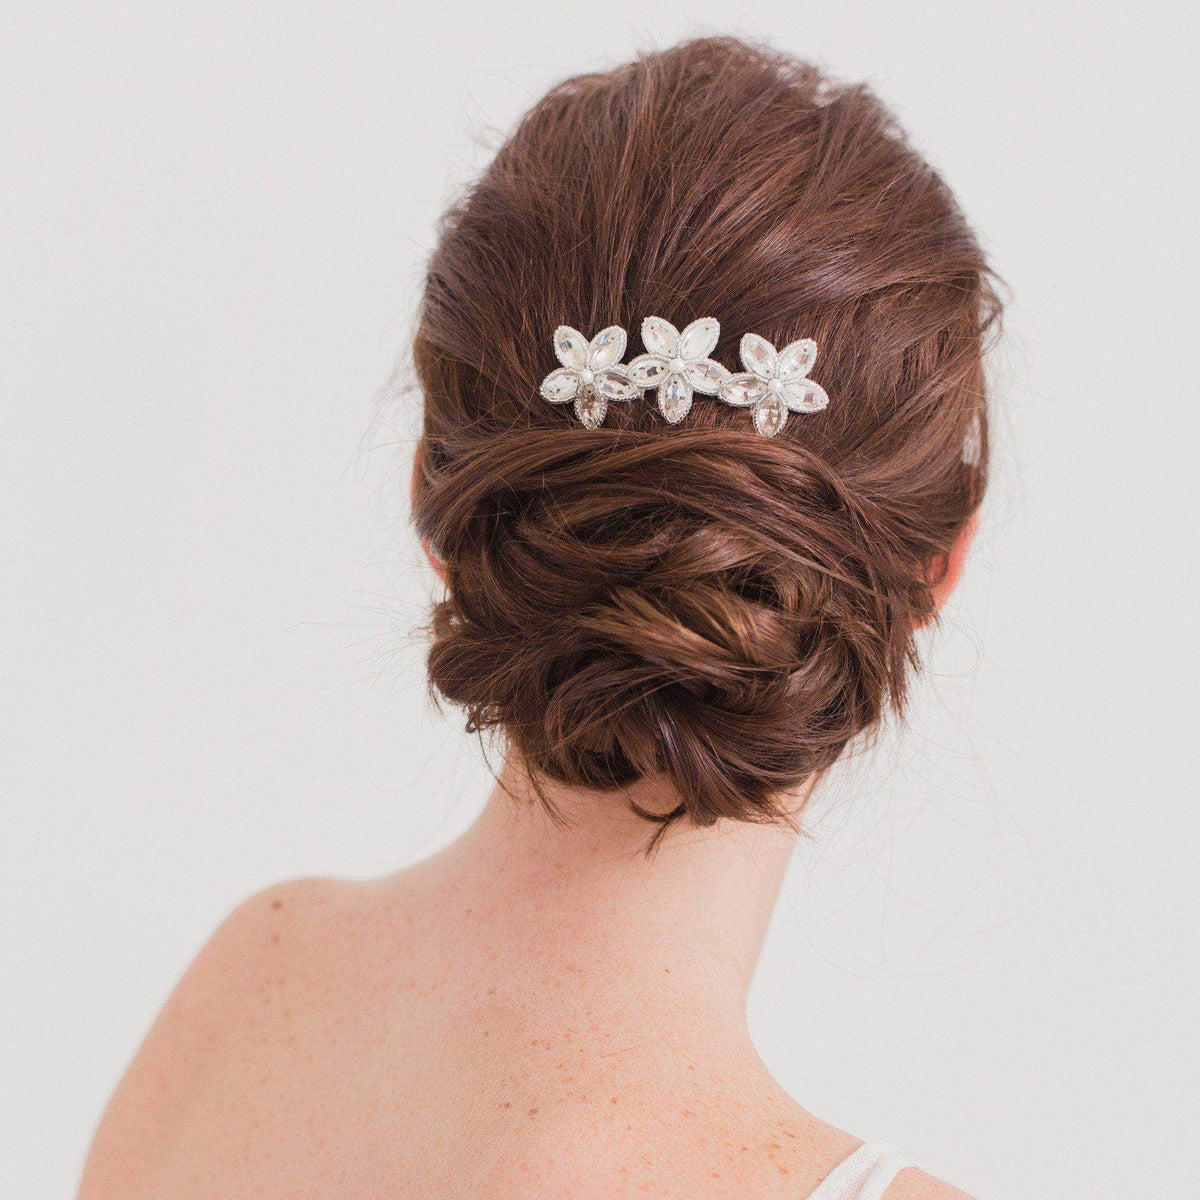 Wedding Haircomb Silver Bridal hair comb with a floral arrangement of crystals and pearls - 'Gioia'